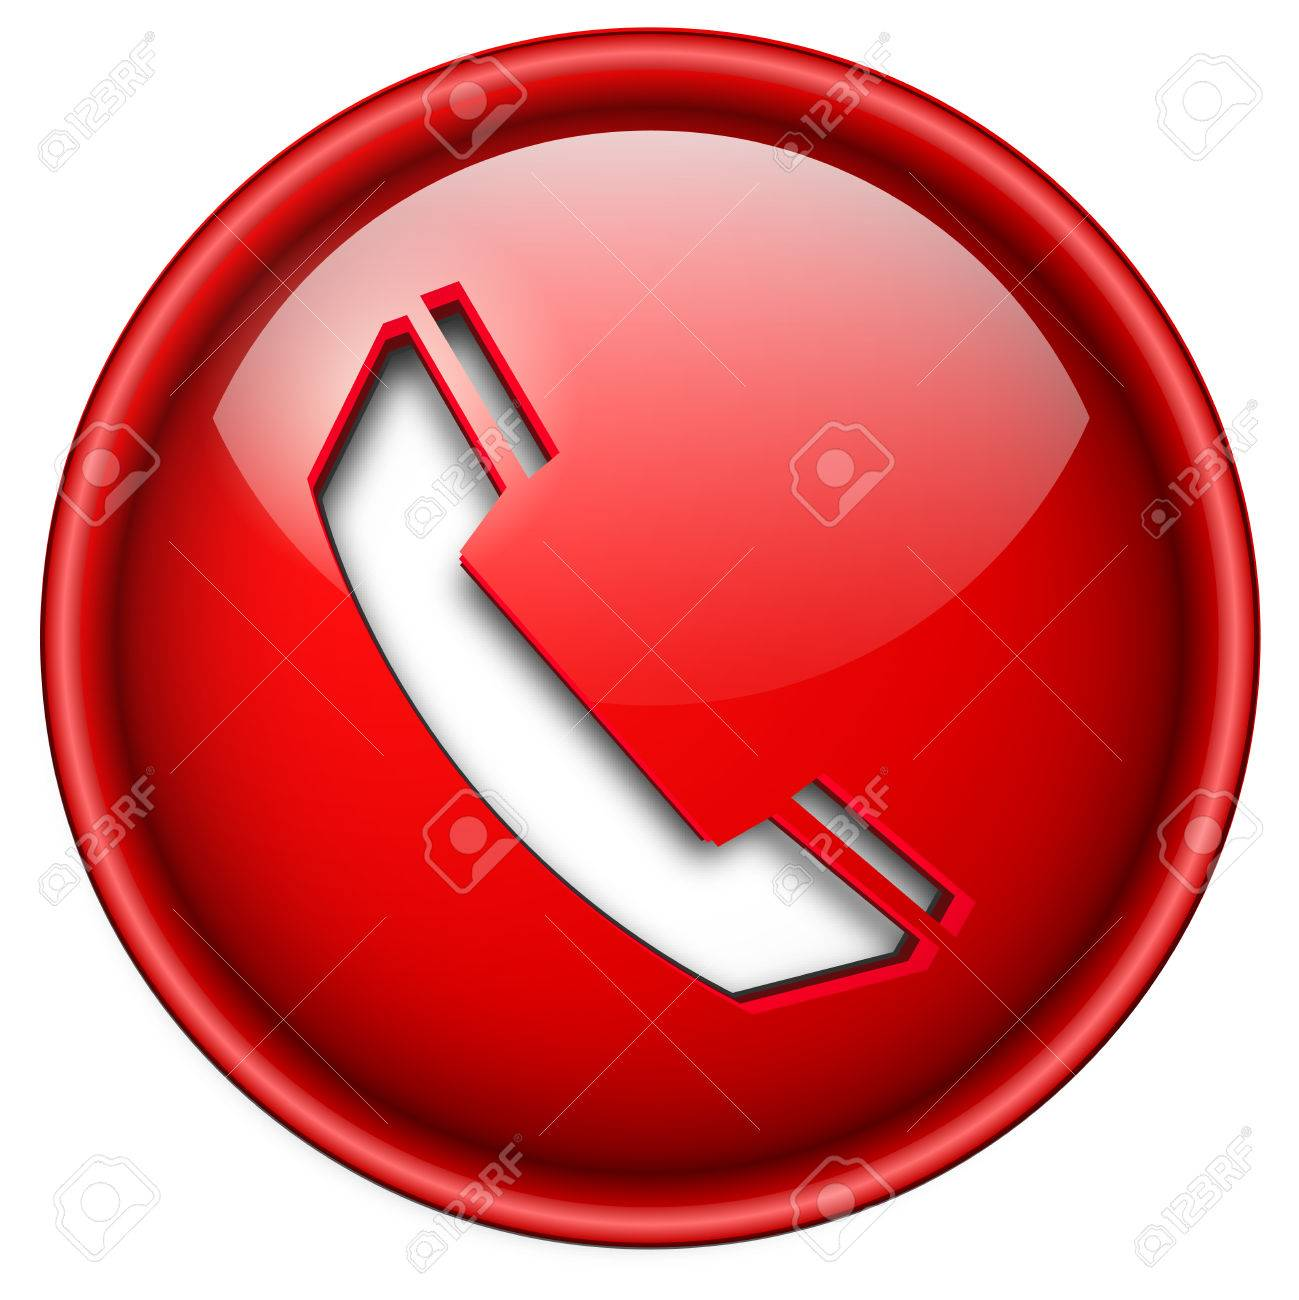 Telephone, phone icon, button, 3d red glossy circle. Stock Vector - 6470711